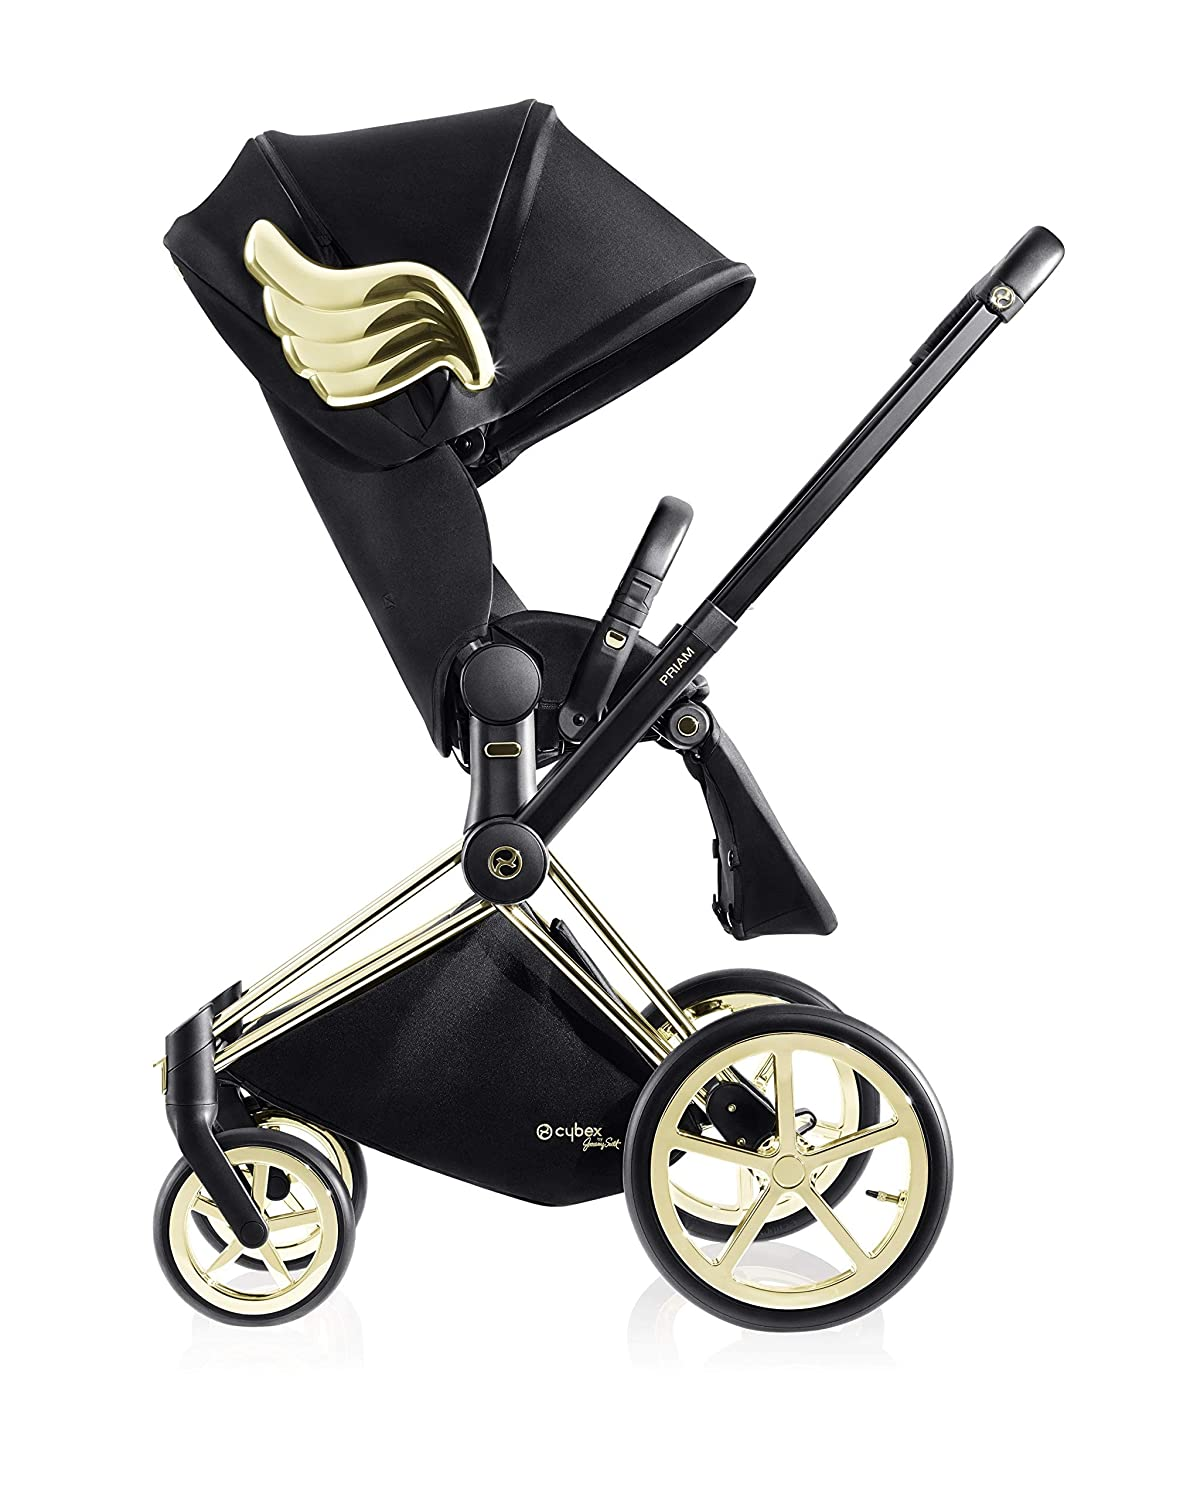 Cybex by Jeremy Scott Wings Collection Priam 3 Complete Stroller